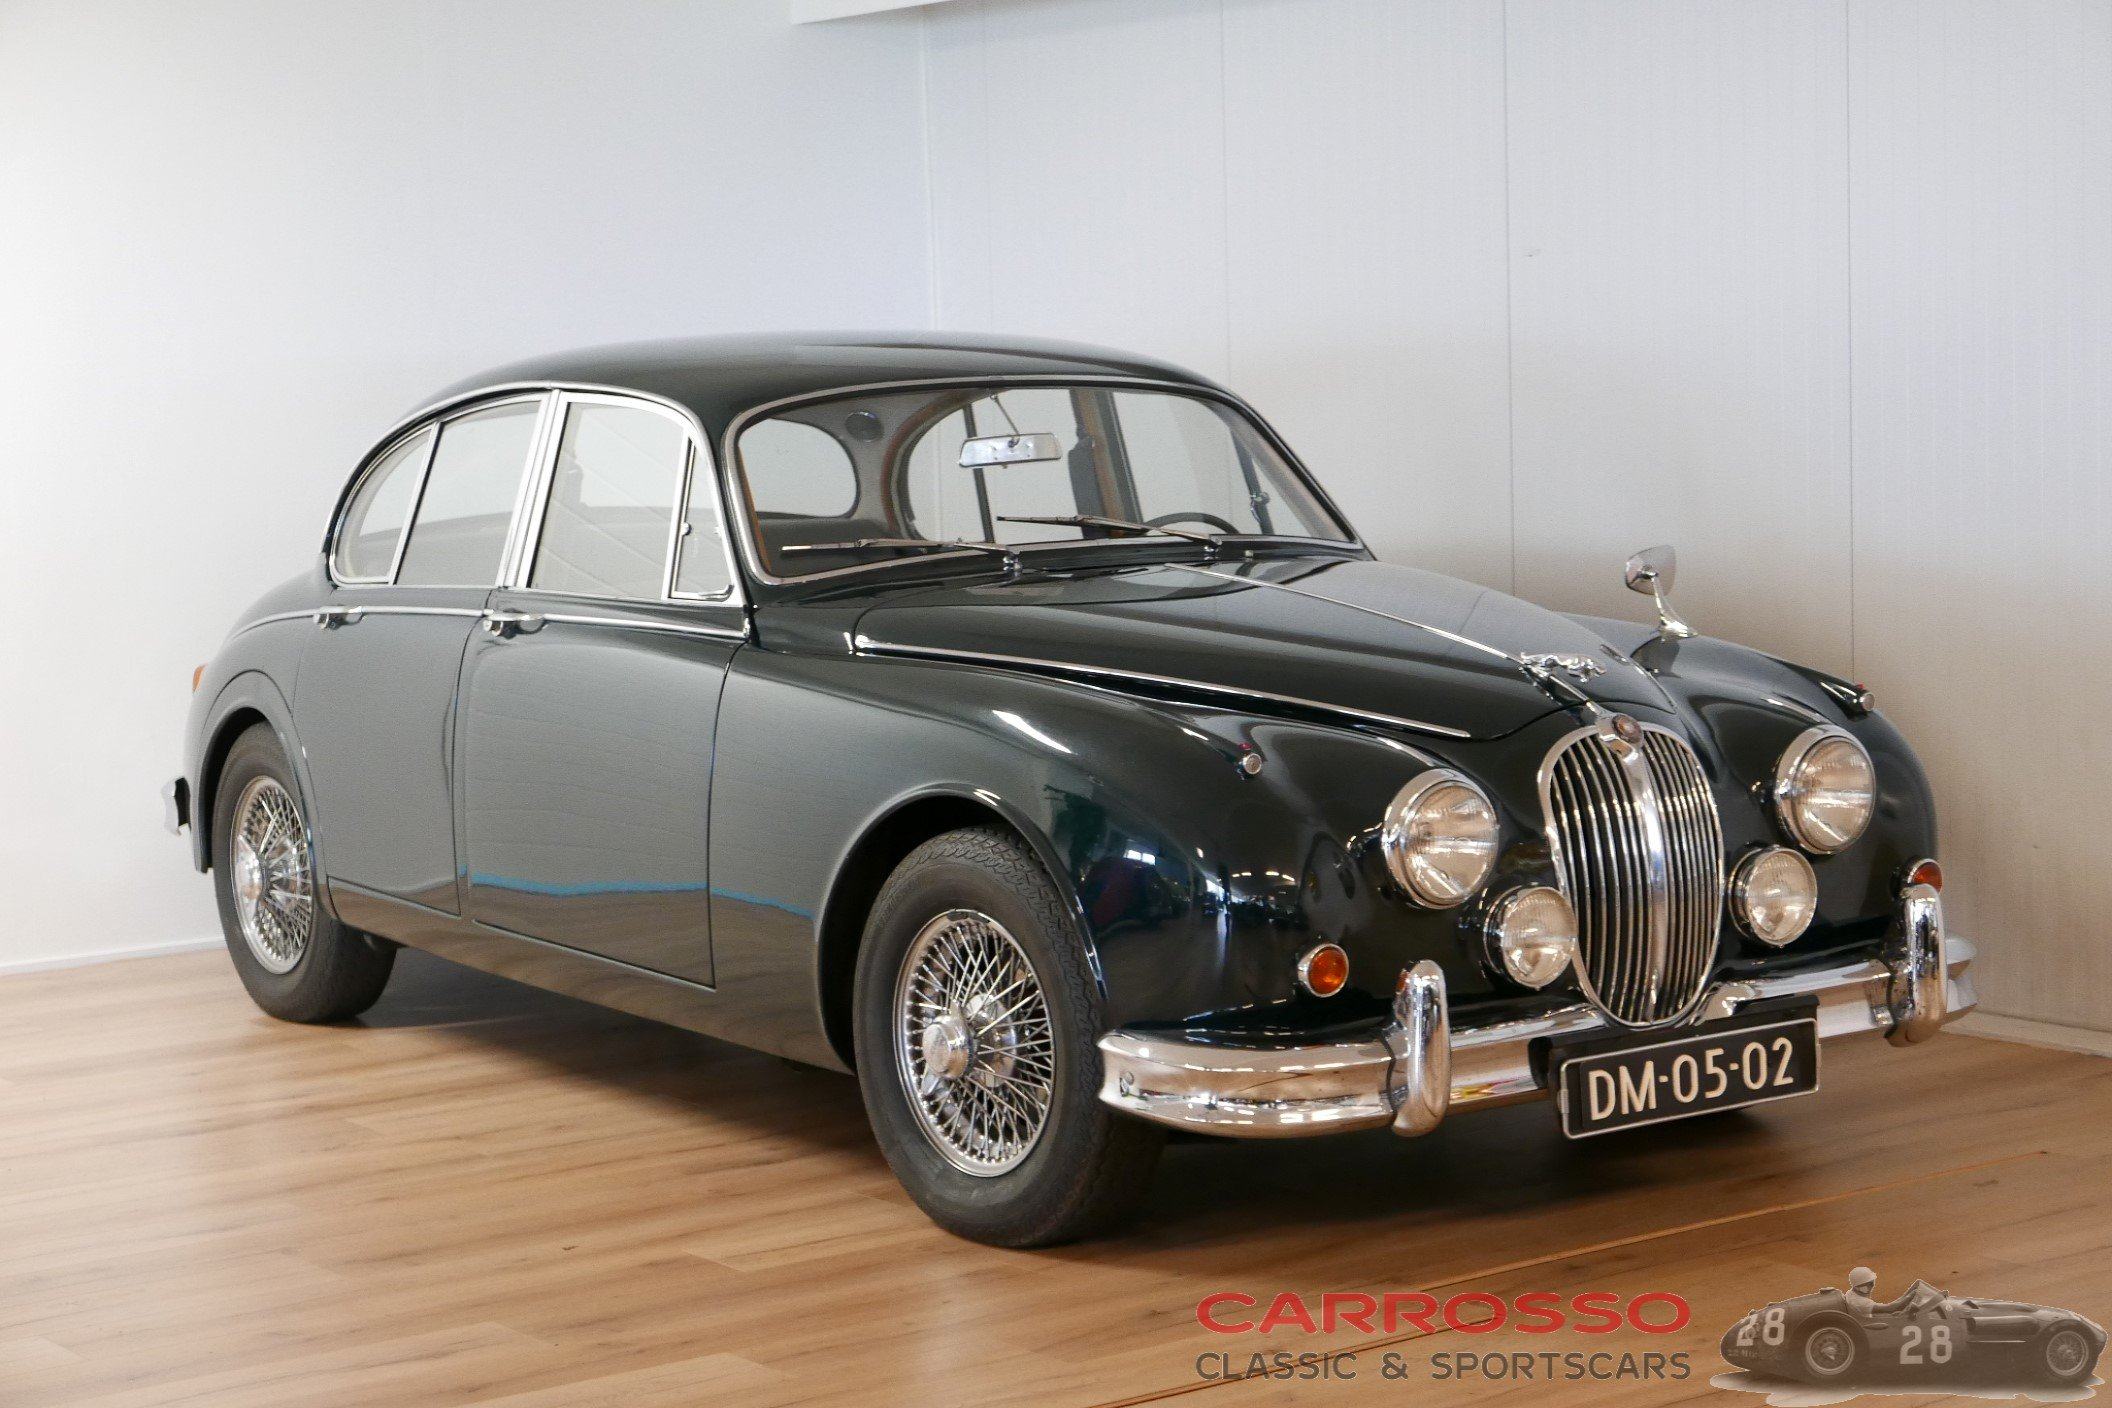 32Jaguar Mark 2 2.4 (67)